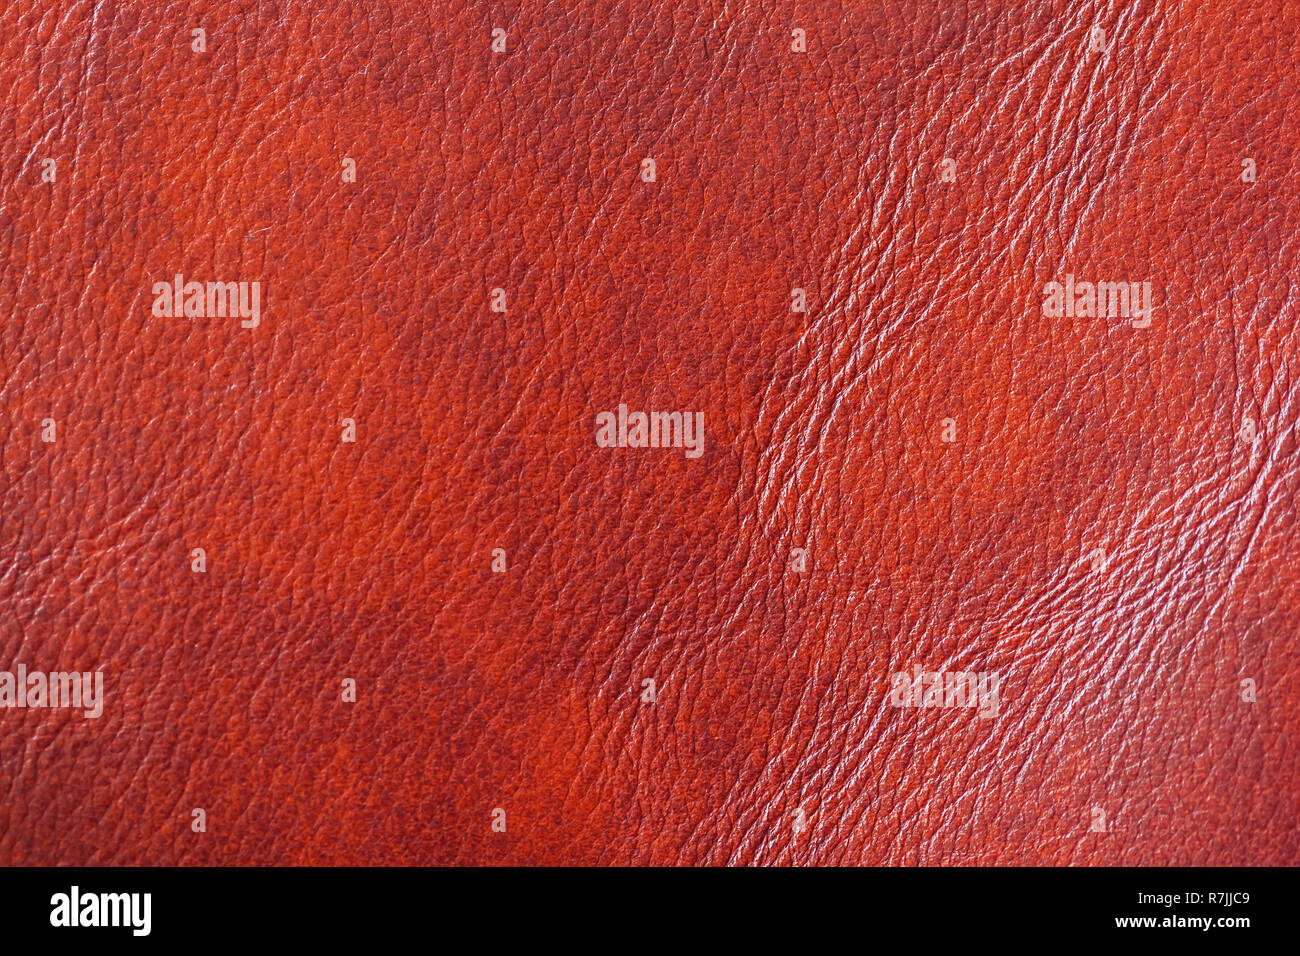 Texture of of genuine leather close-up, with wrinkle, crease, orange brown color, background surface - Stock Image